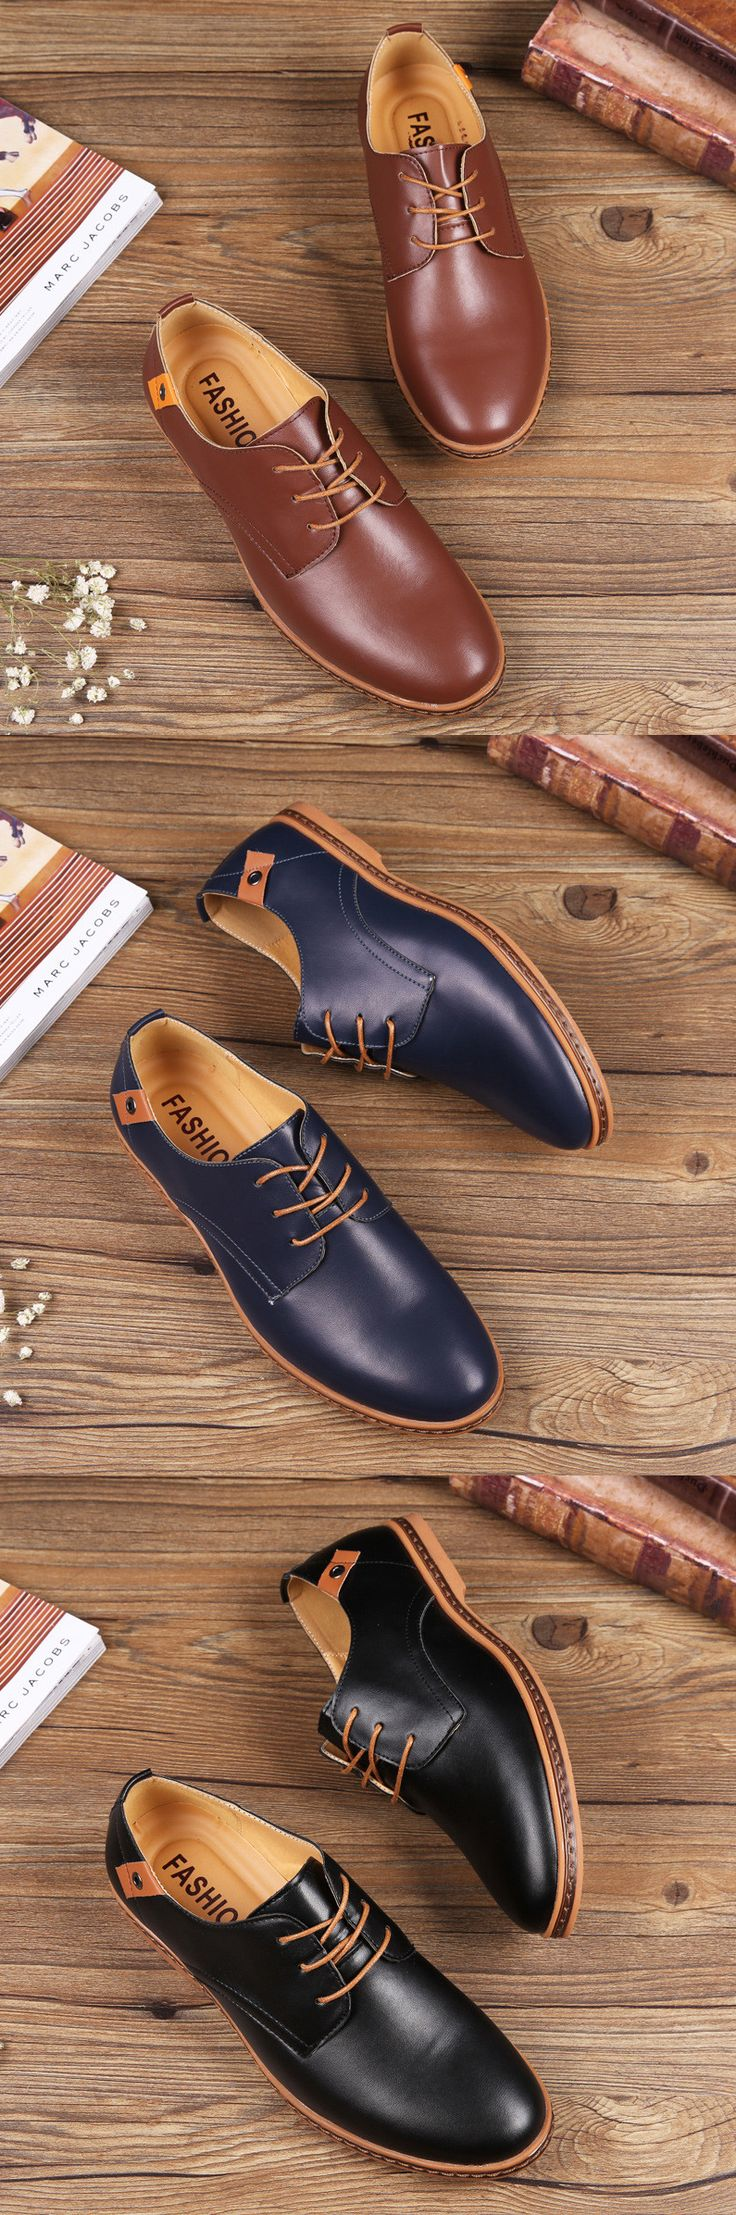 US$21.47 Big Size Men Pure Color Lace Up European British Style Flat Casual Oxford Shoes http://www.skinnymefat.com/paleo-diet/